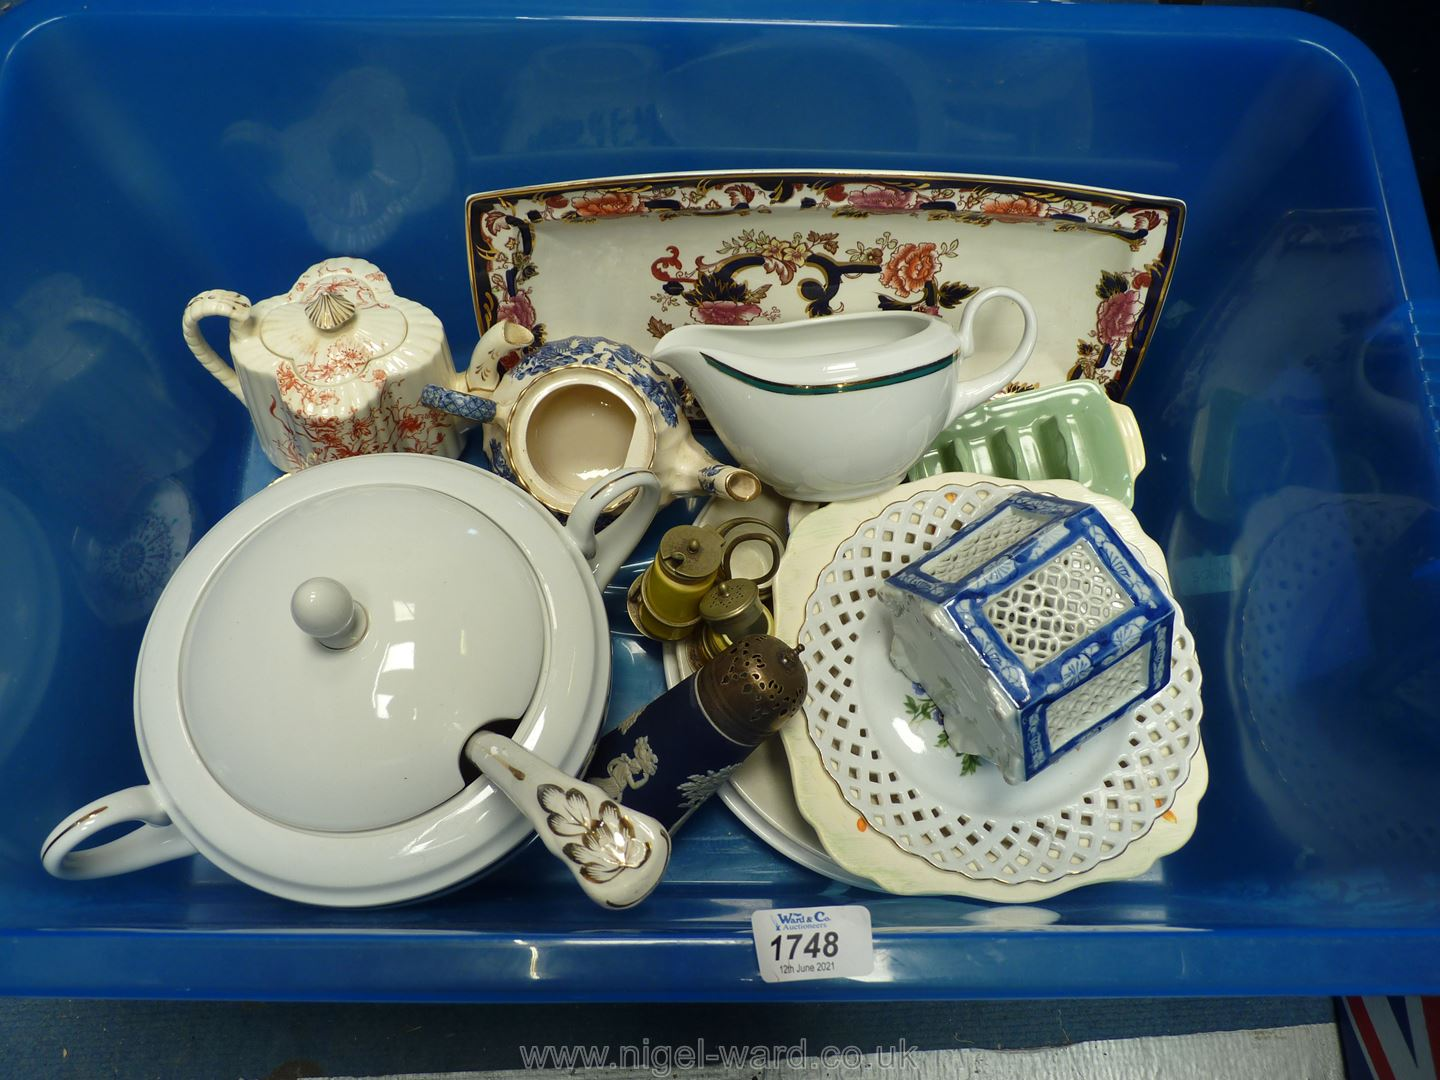 A quantity of china including a blue and white Sadler teapot, Wedgwood Jasperware sugar sifter,